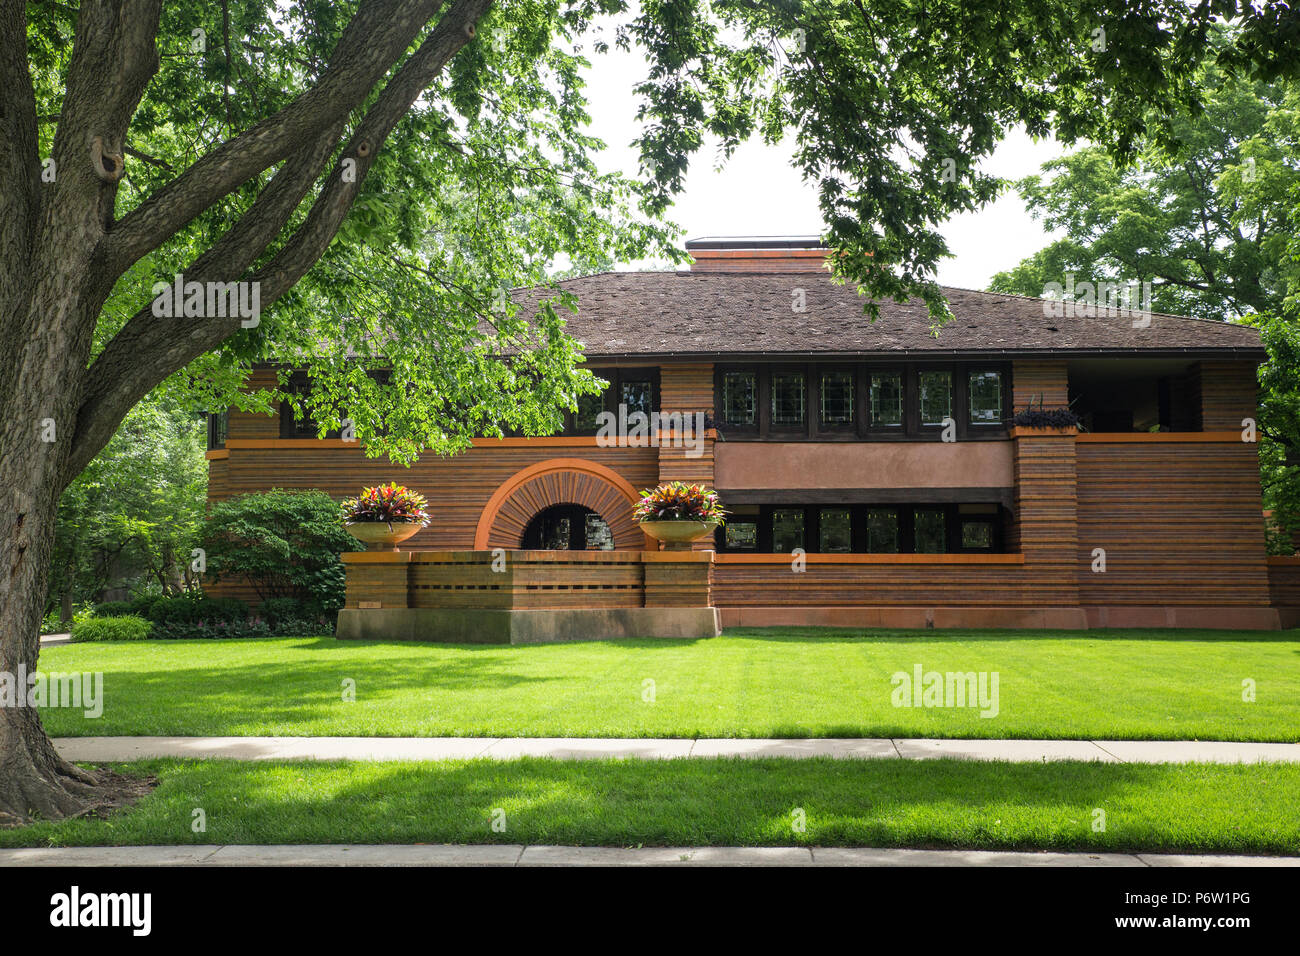 OAK PARK, ILLINOIS - JUNE 25, 2018: The Arthur B. Heurtley House from 1902 designed by architect Frank Lloyd Wright - Stock Image